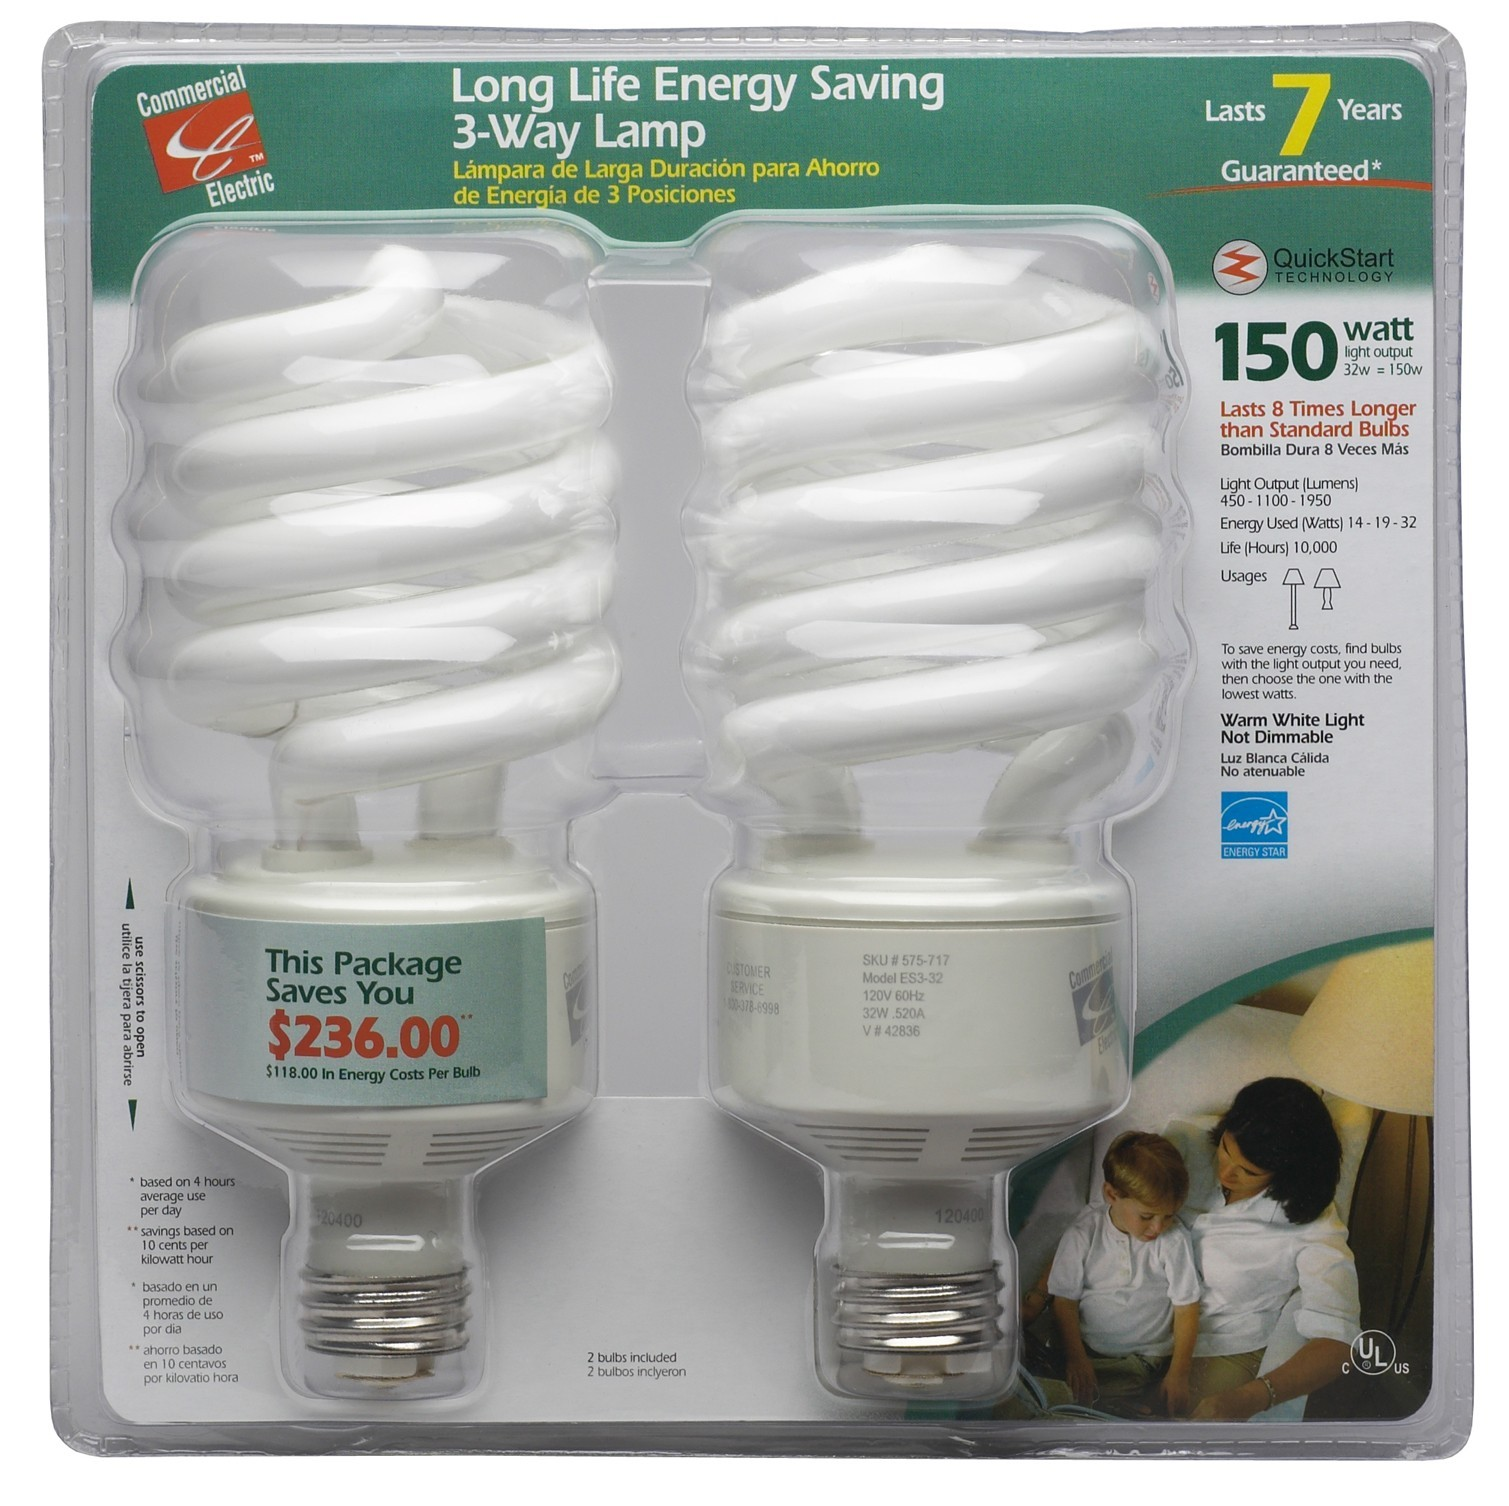 Cpsc technical consumer products inc announce recall of picture of recalled light bulbs aloadofball Choice Image